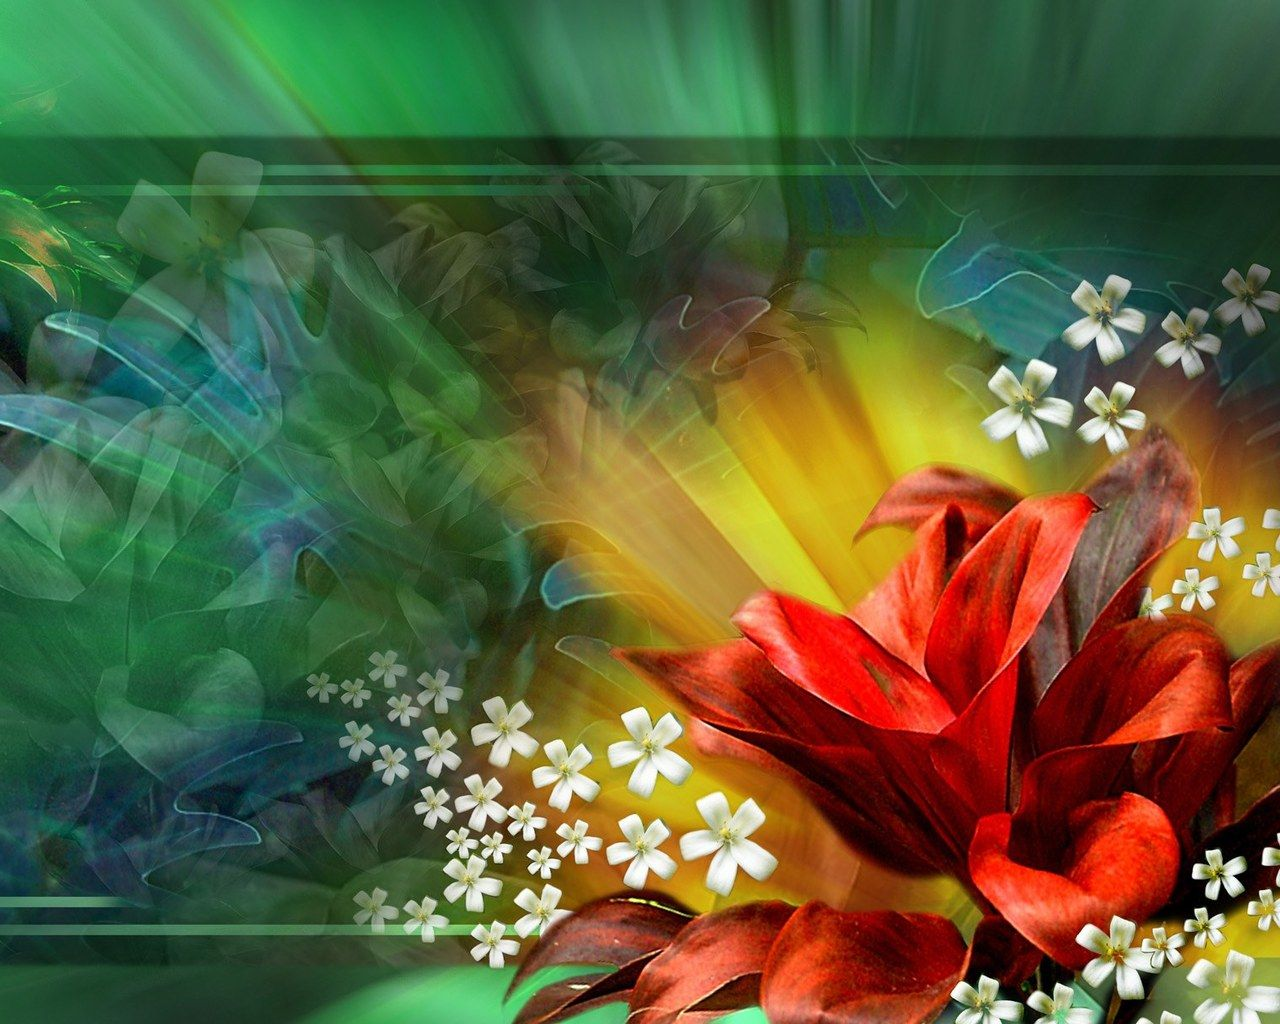 30 Animated Laptop Windows 7 Backgrounds Hq Hersilia Girardetti